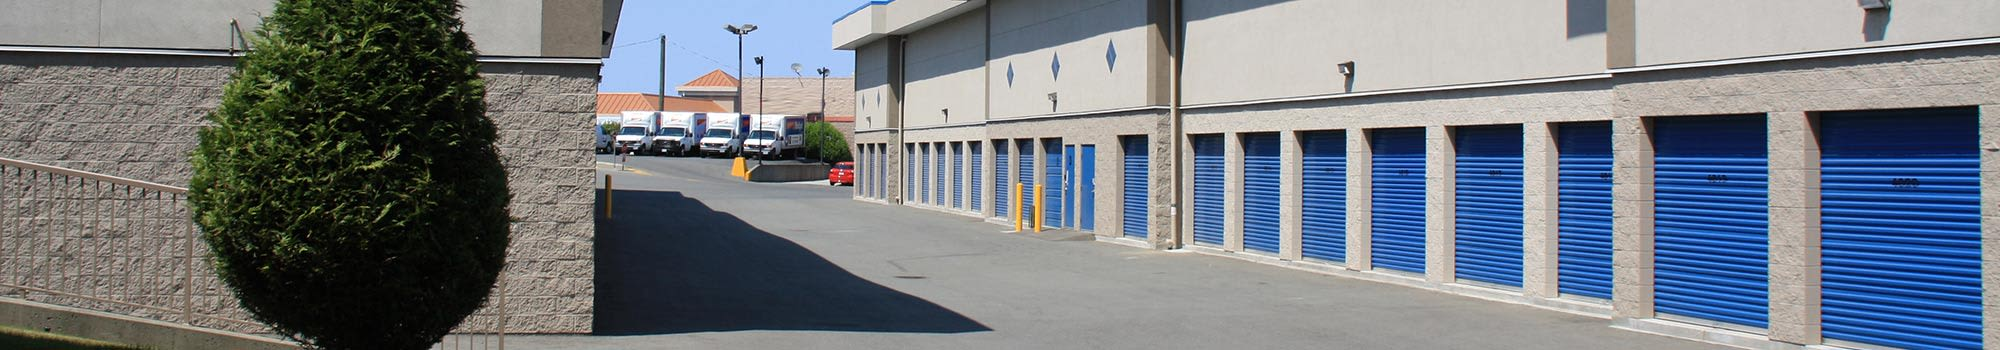 Hours & Directions for Budget Self Storage